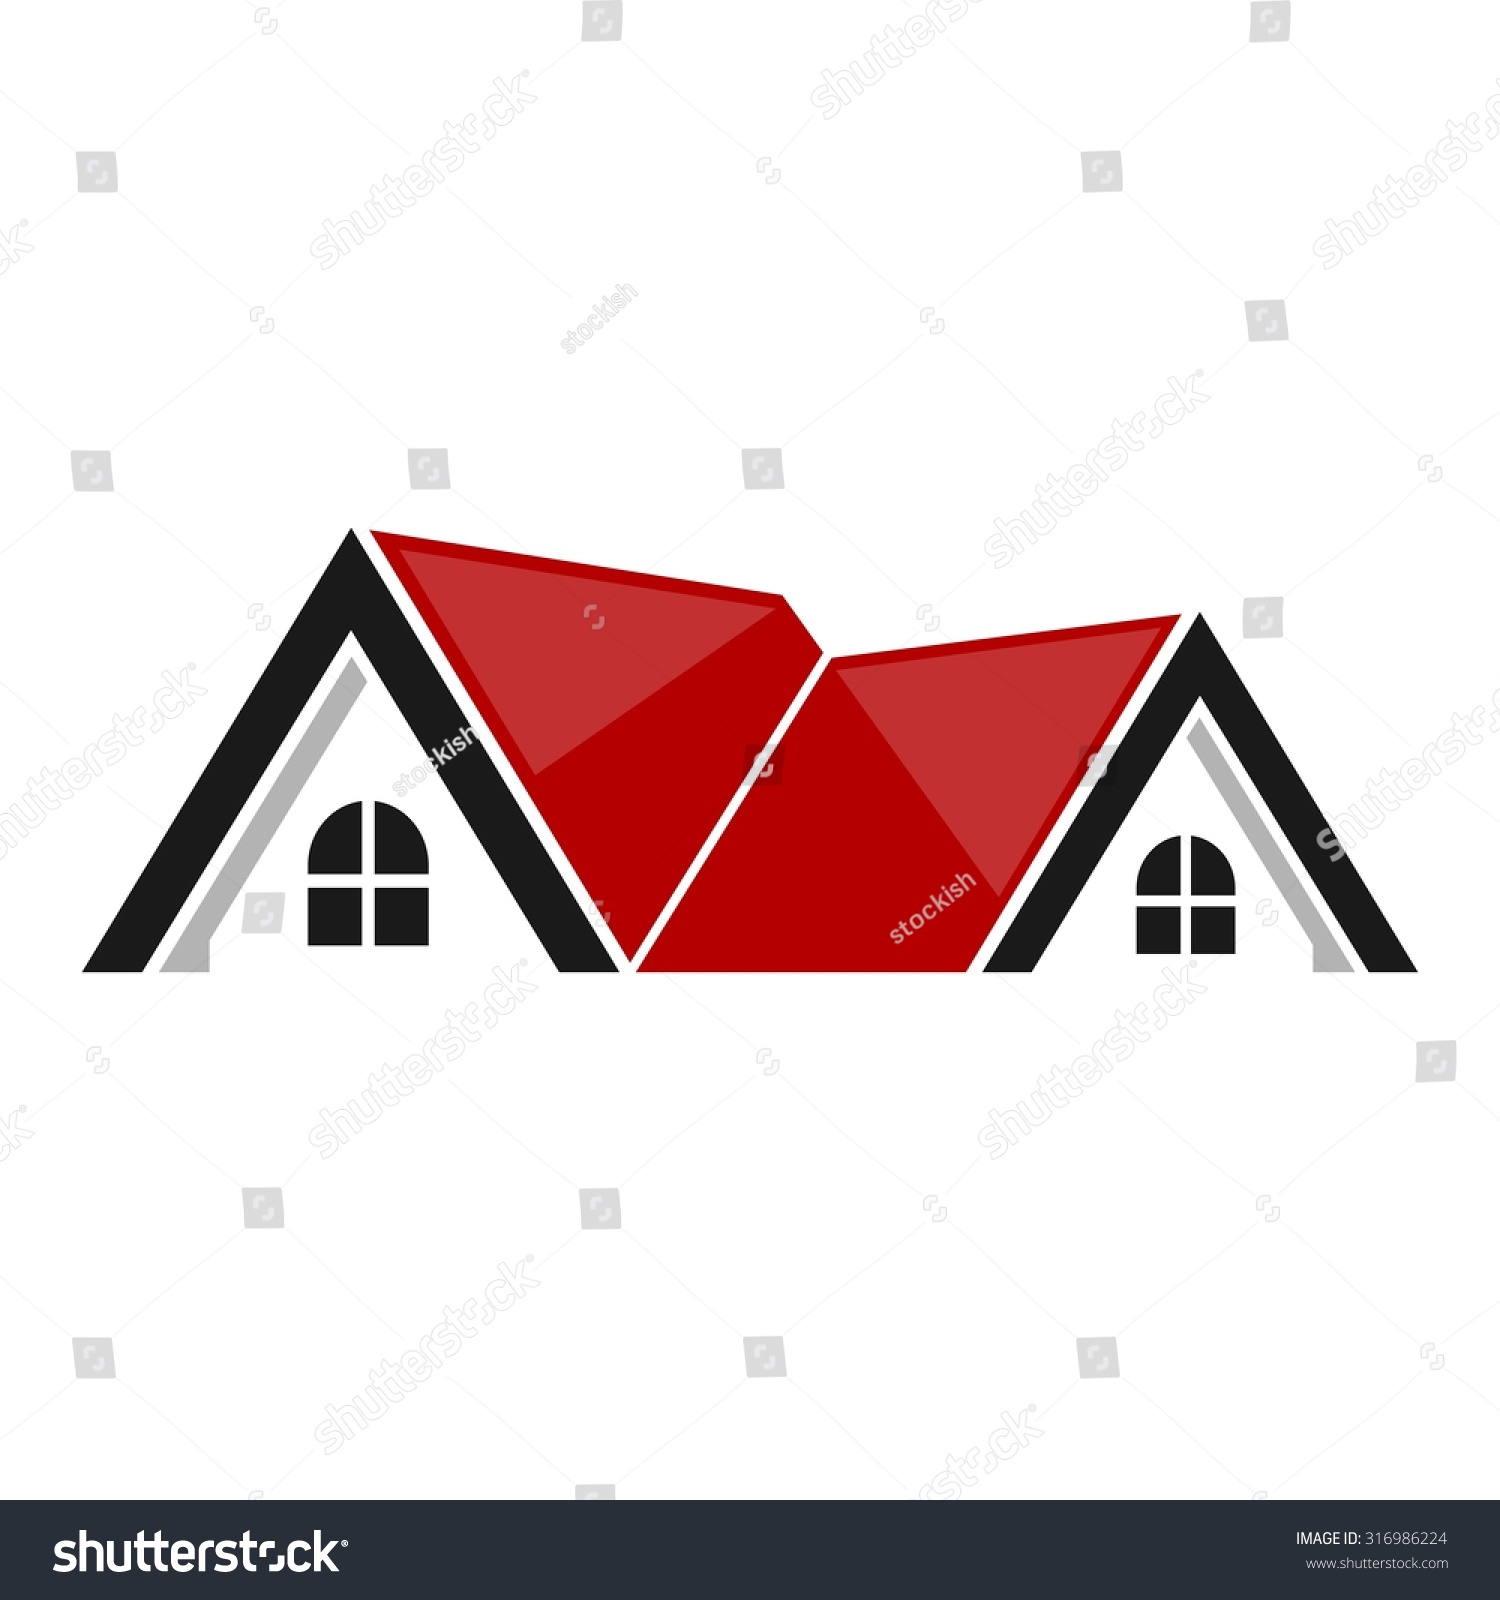 Real Estate Symbols Roofs Houses Buildings Stock Vector Hd Royalty